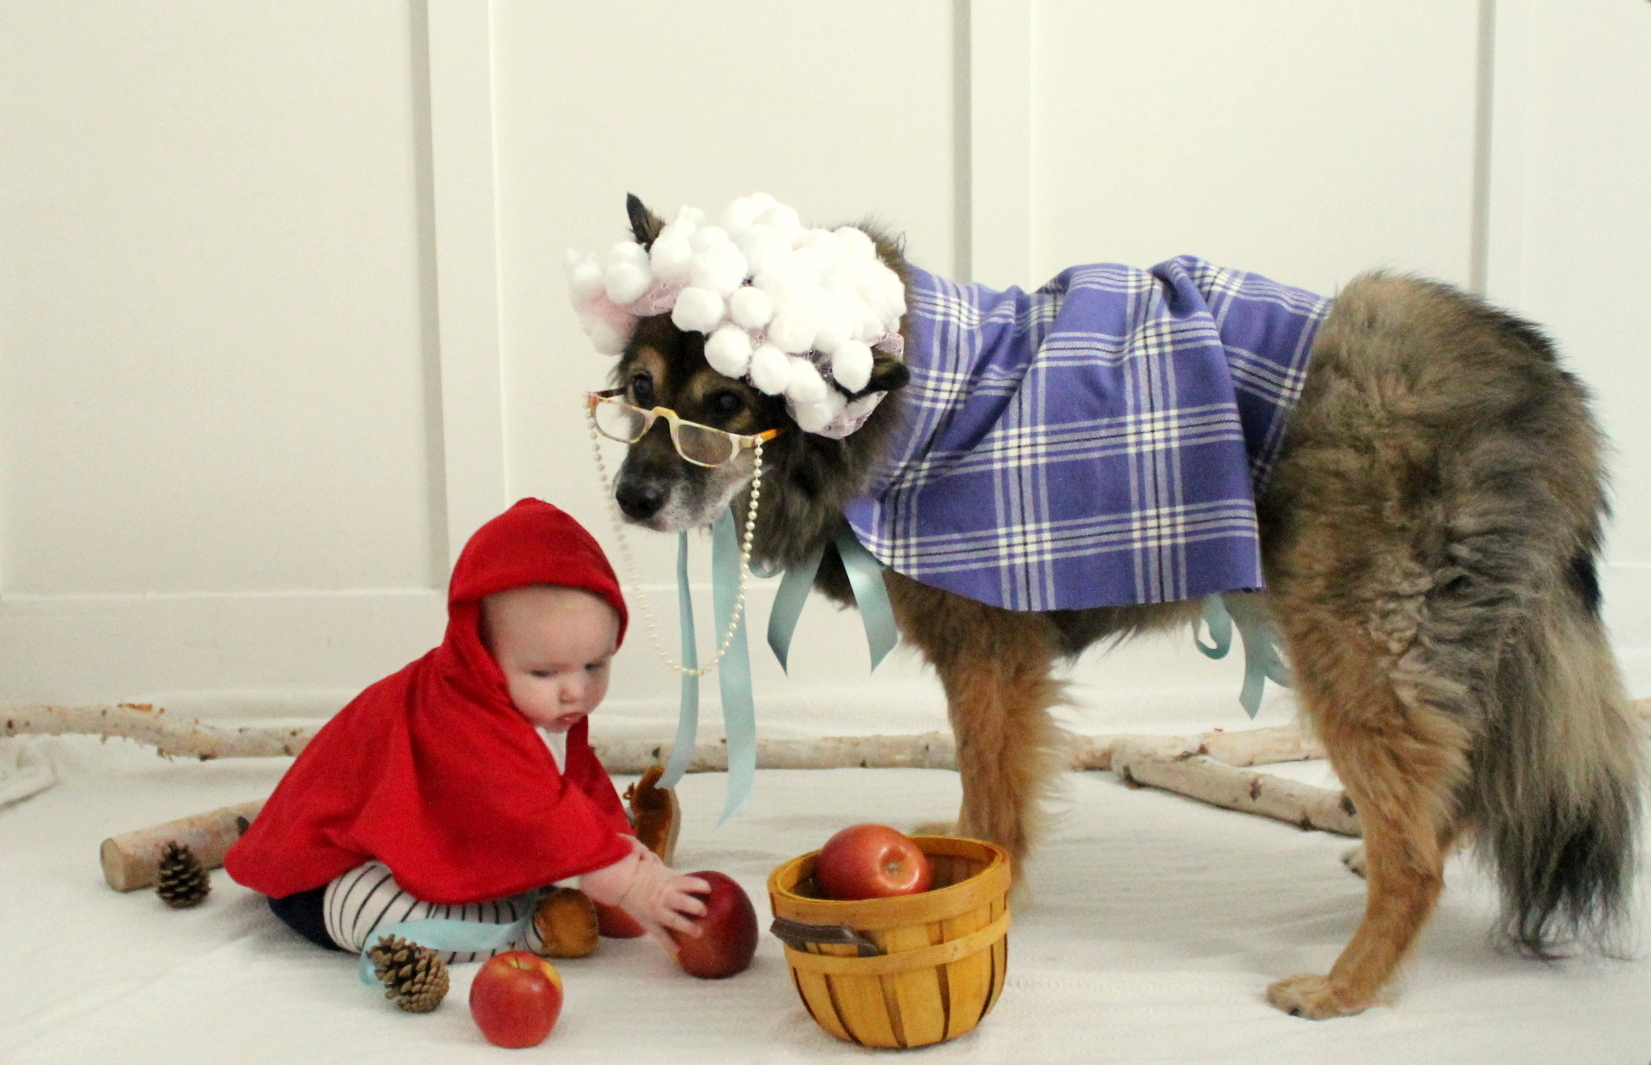 FFW_10-22-15_dog-and-kid-costumes